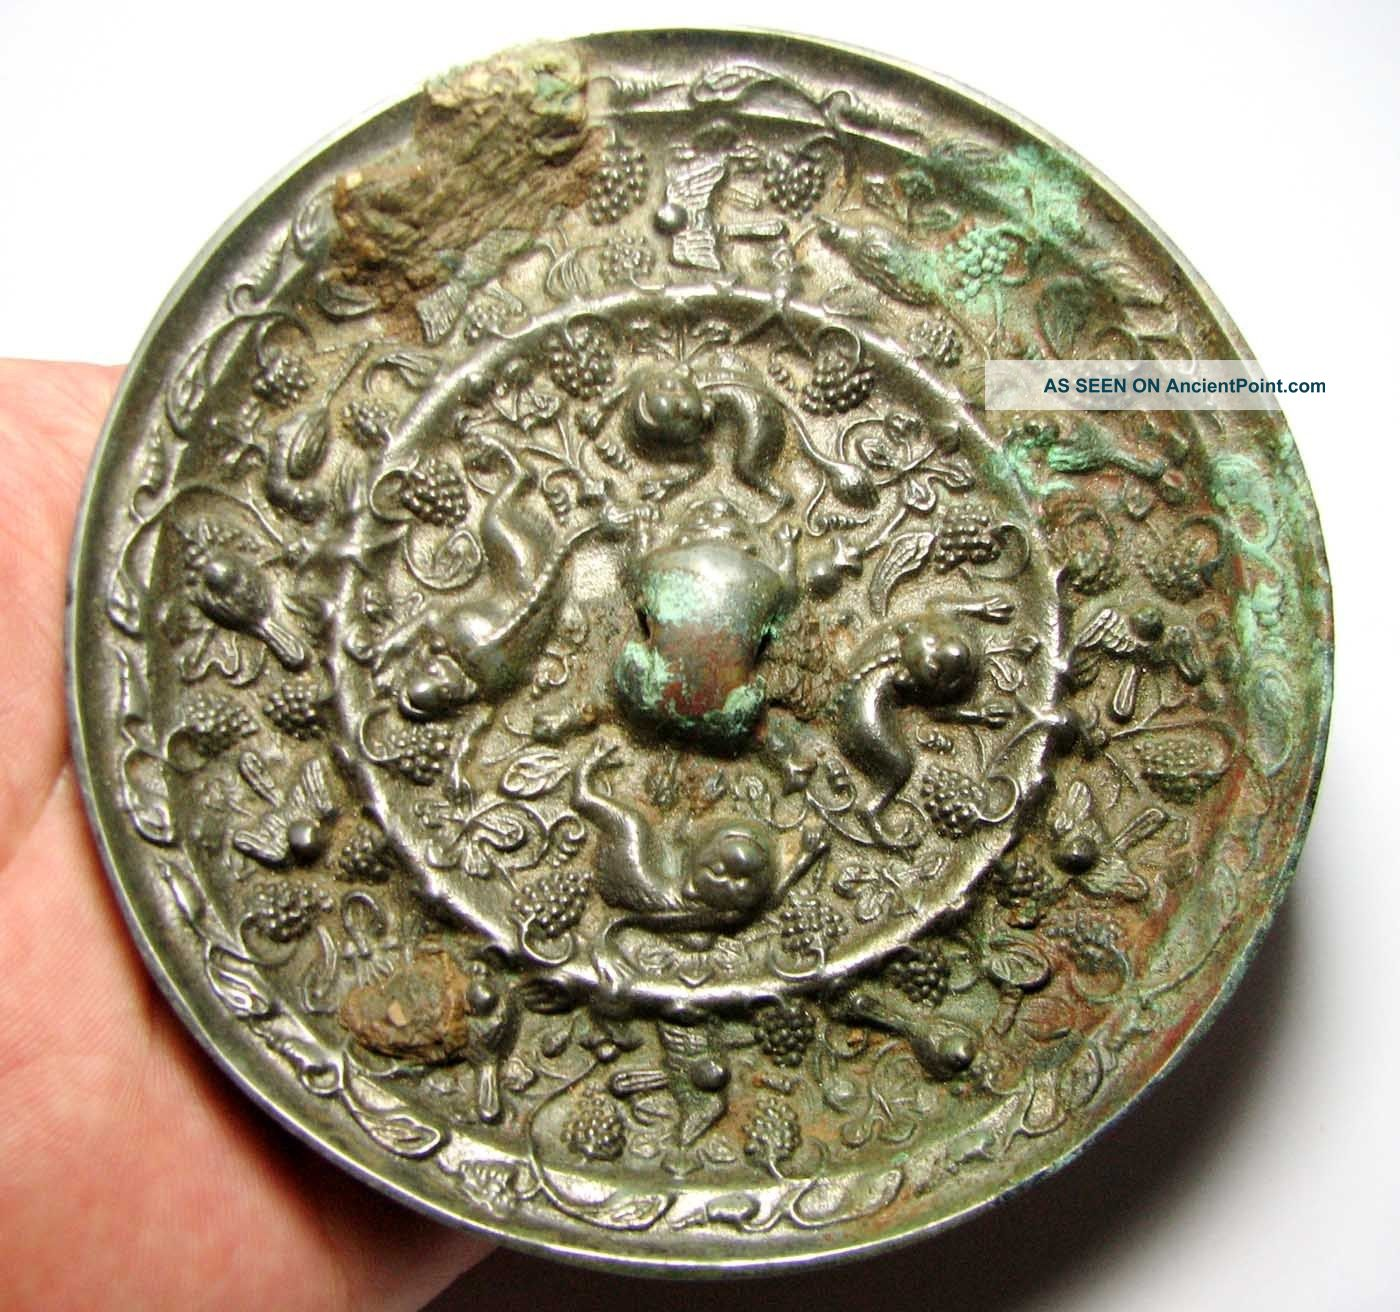 Matncat84 A Tang Dynasty Decorated Bronze Mirror Large And Heavy  B179 Other photo